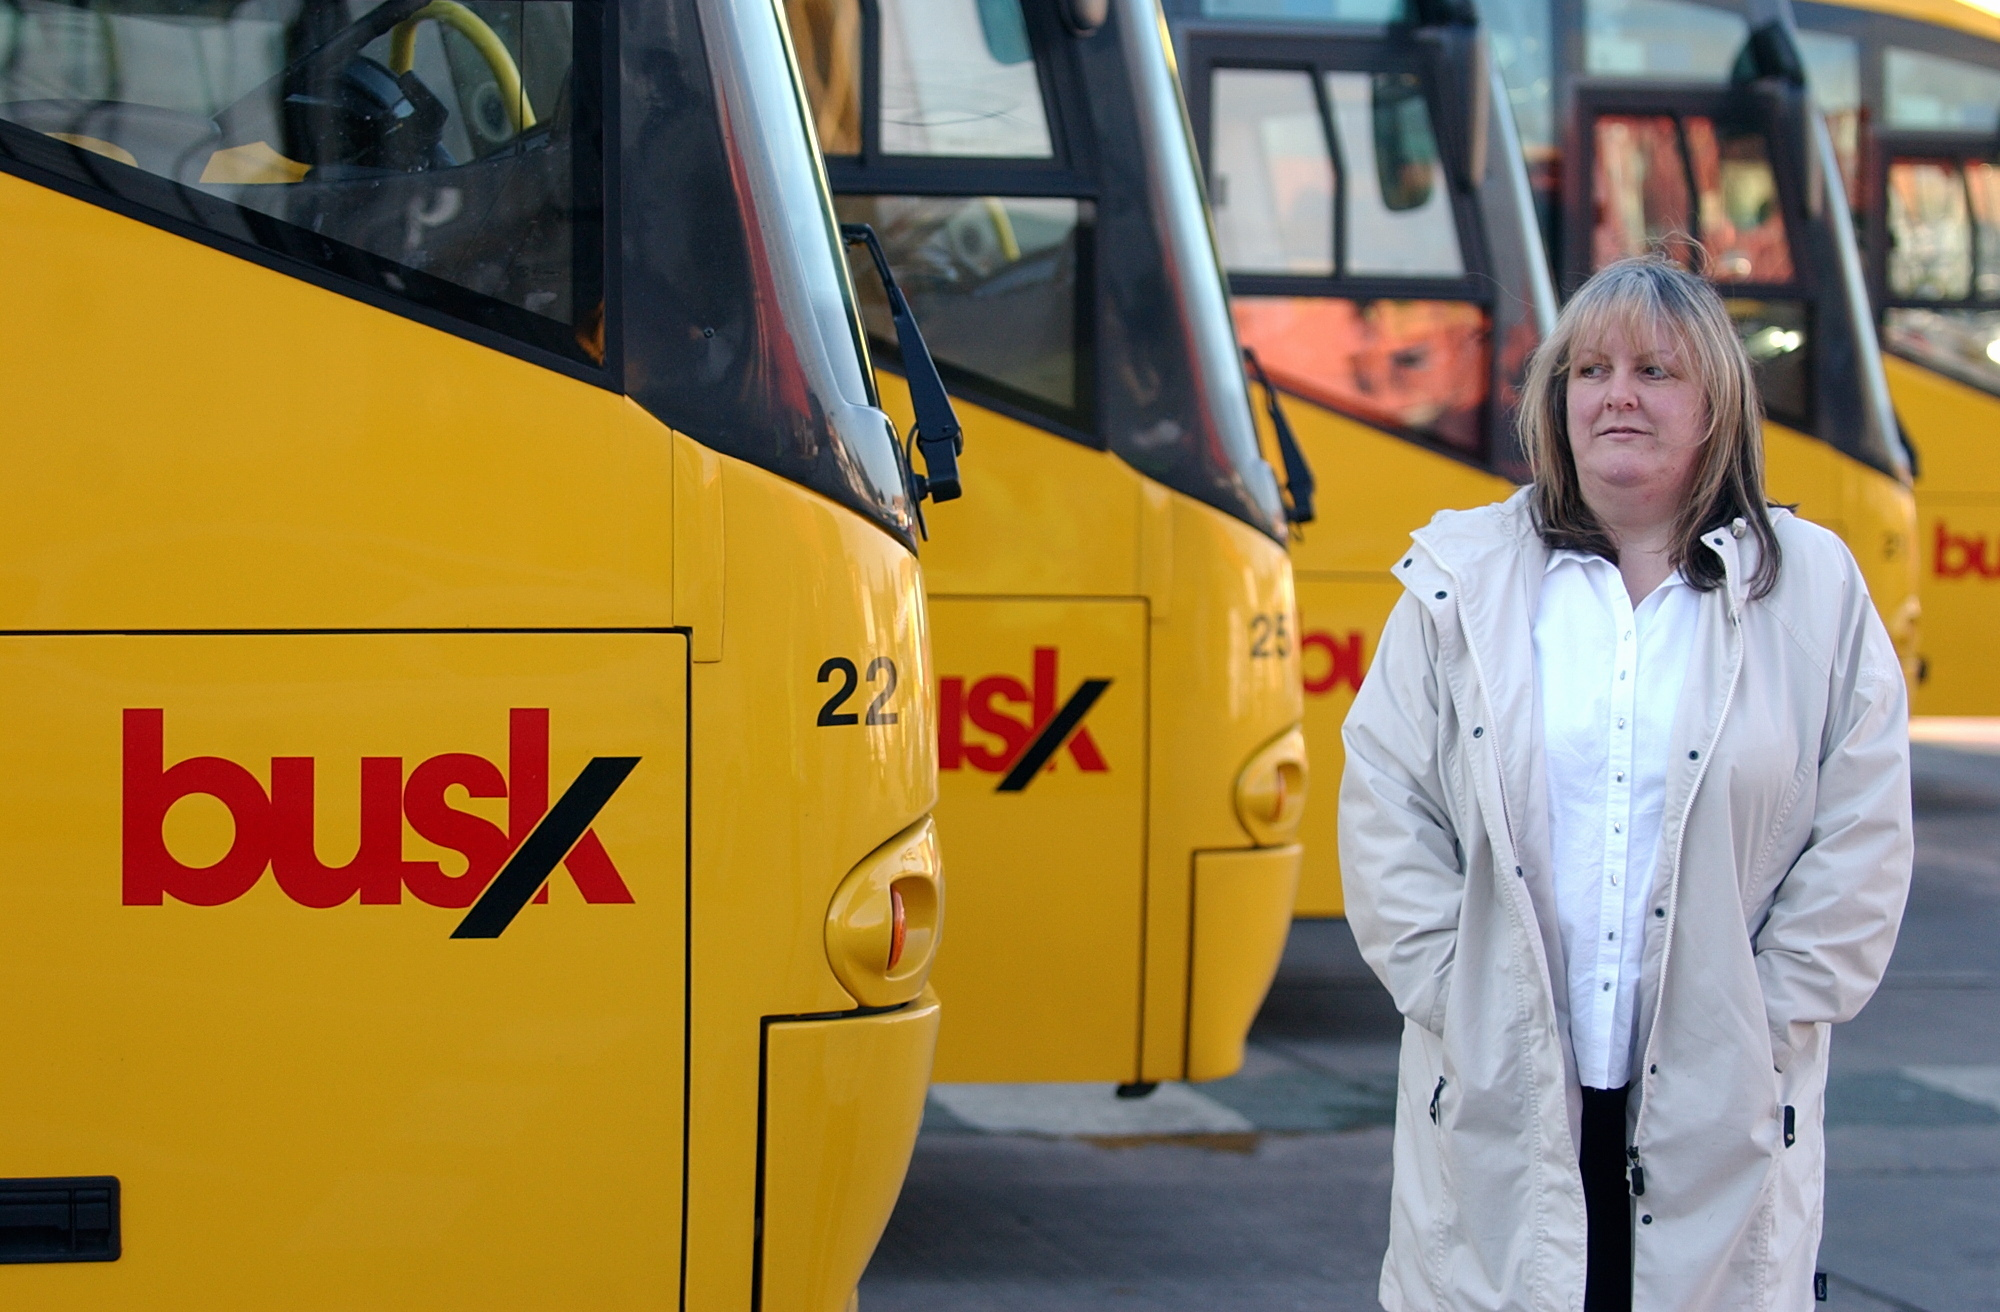 NEW CAMPAIGN: BUSK director Pat Harris